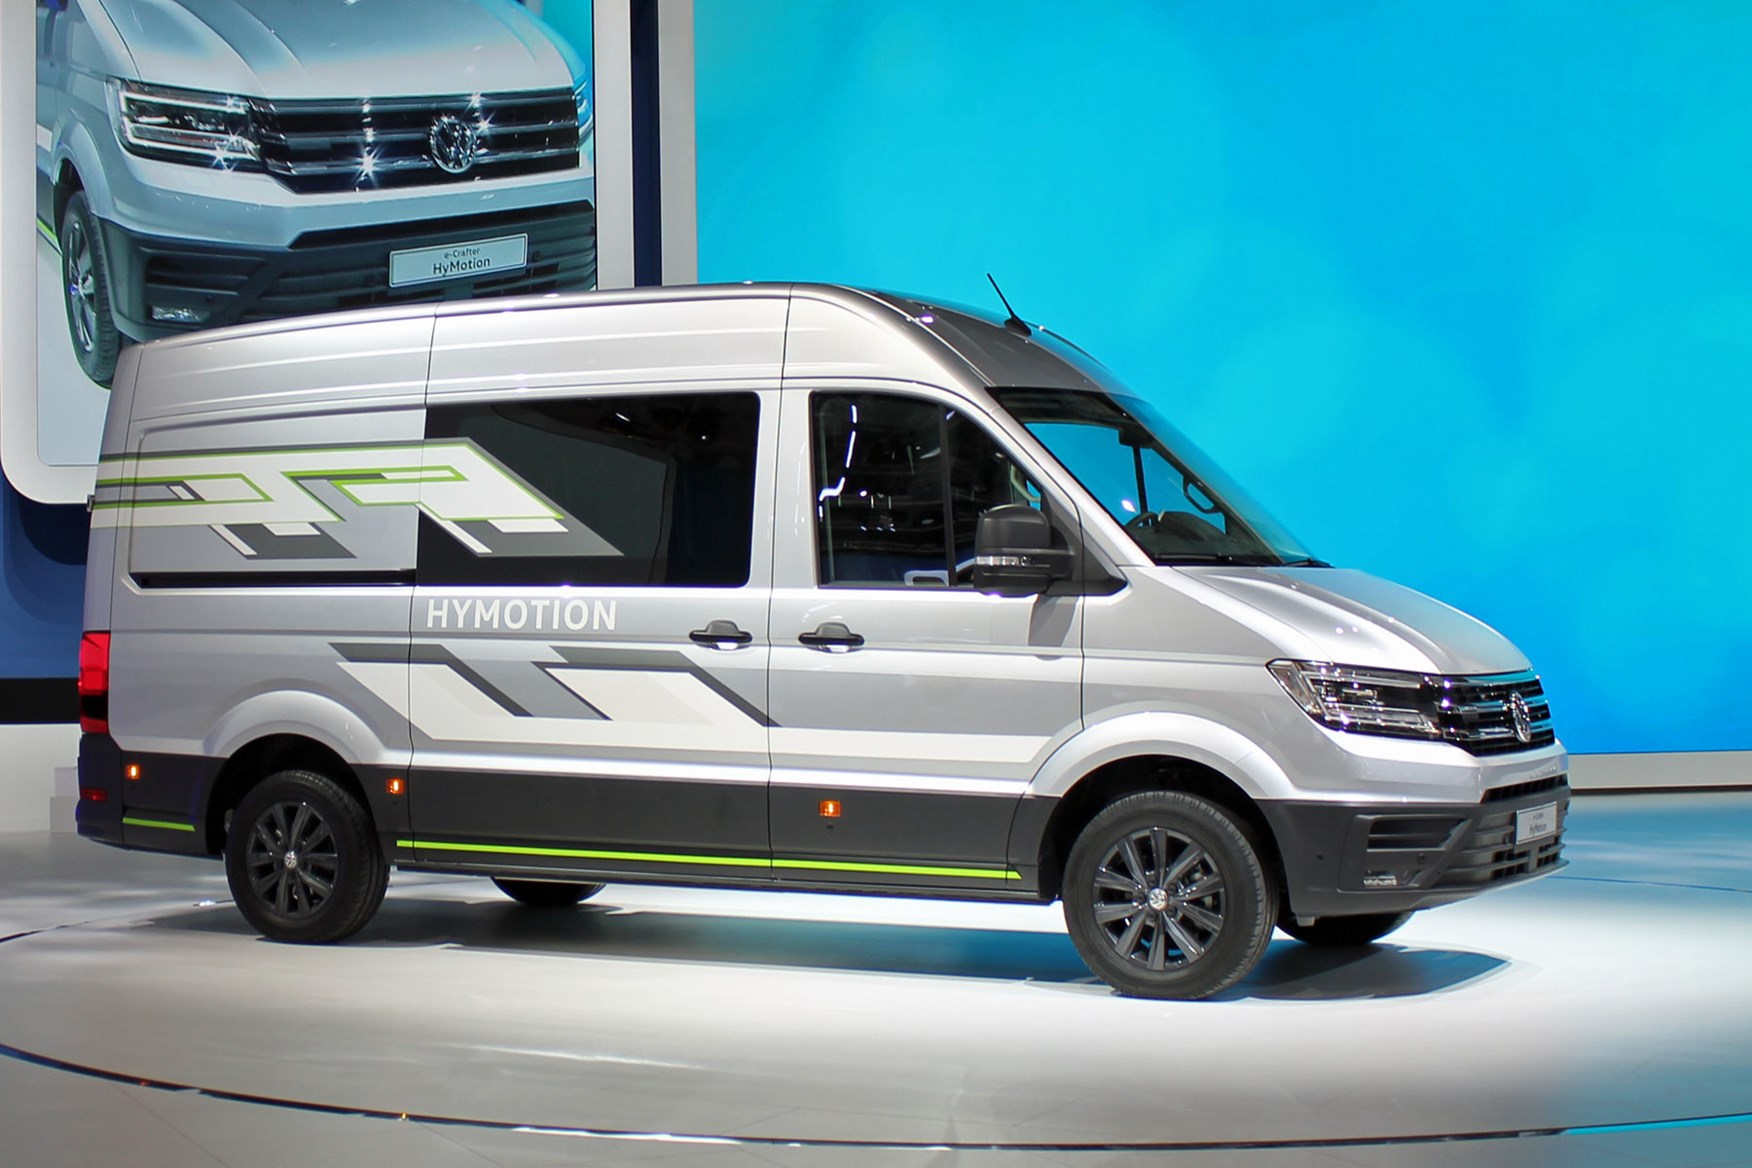 VW Crafter HyMotion concept previews future hydrogen fuel cell